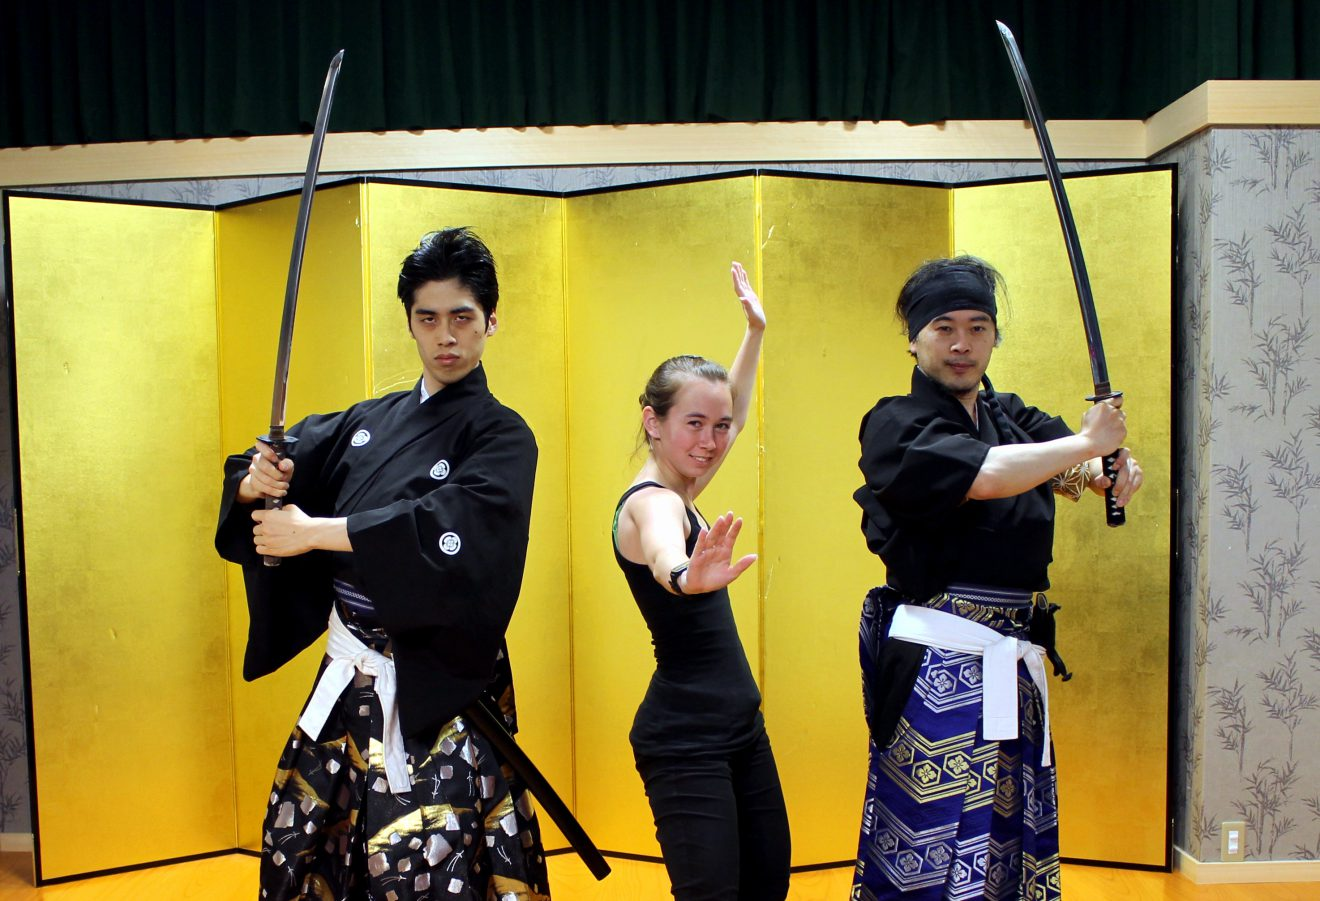 Samurai Kembu Theater Demonstration Show | Footsteps of a Dreamer